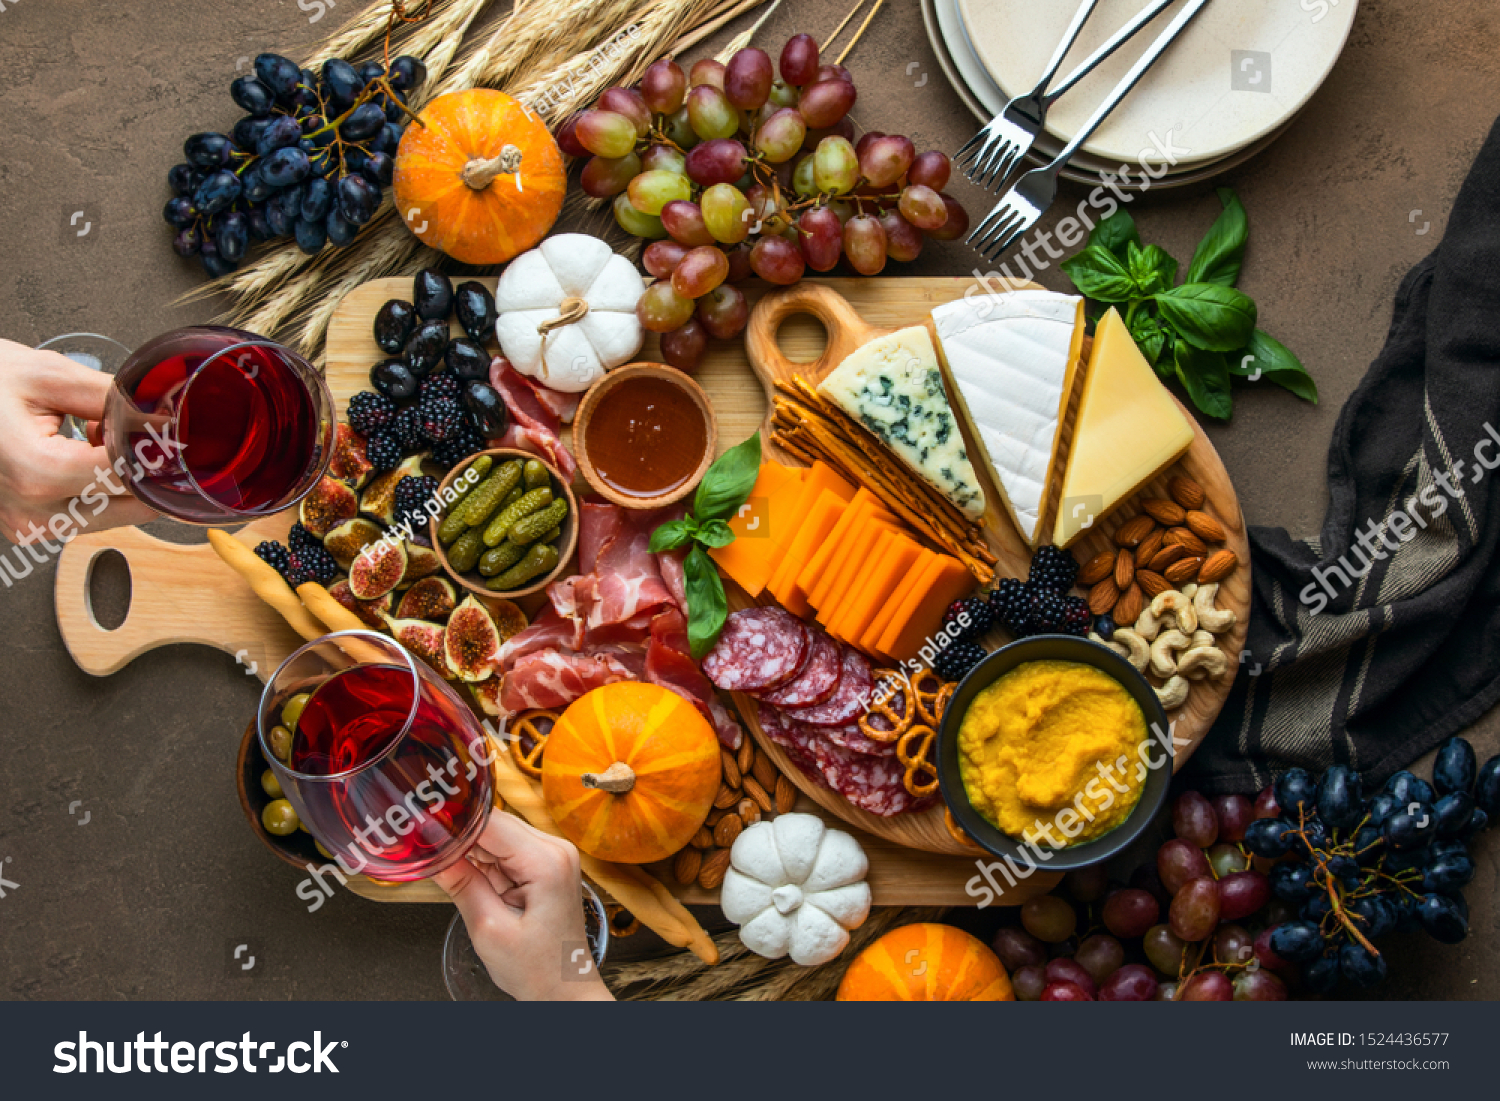 Autumn Party Easy Snack Board Concept Stock Photo Edit Now 1524436577